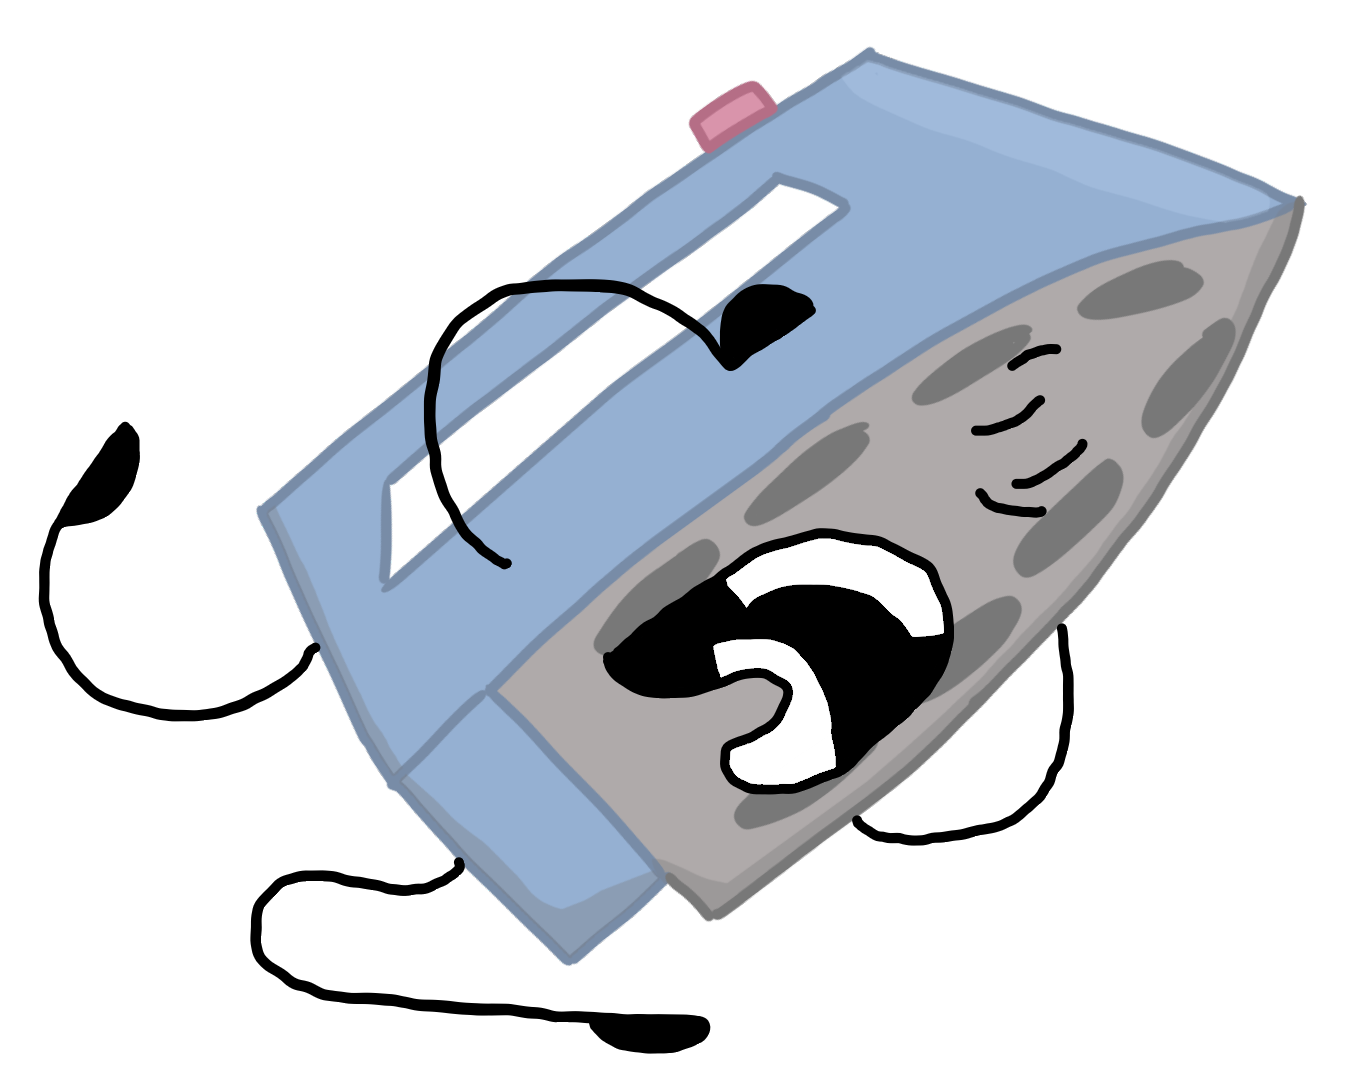 picture library stock Toaster clipart dead. Image irony robfalm png.